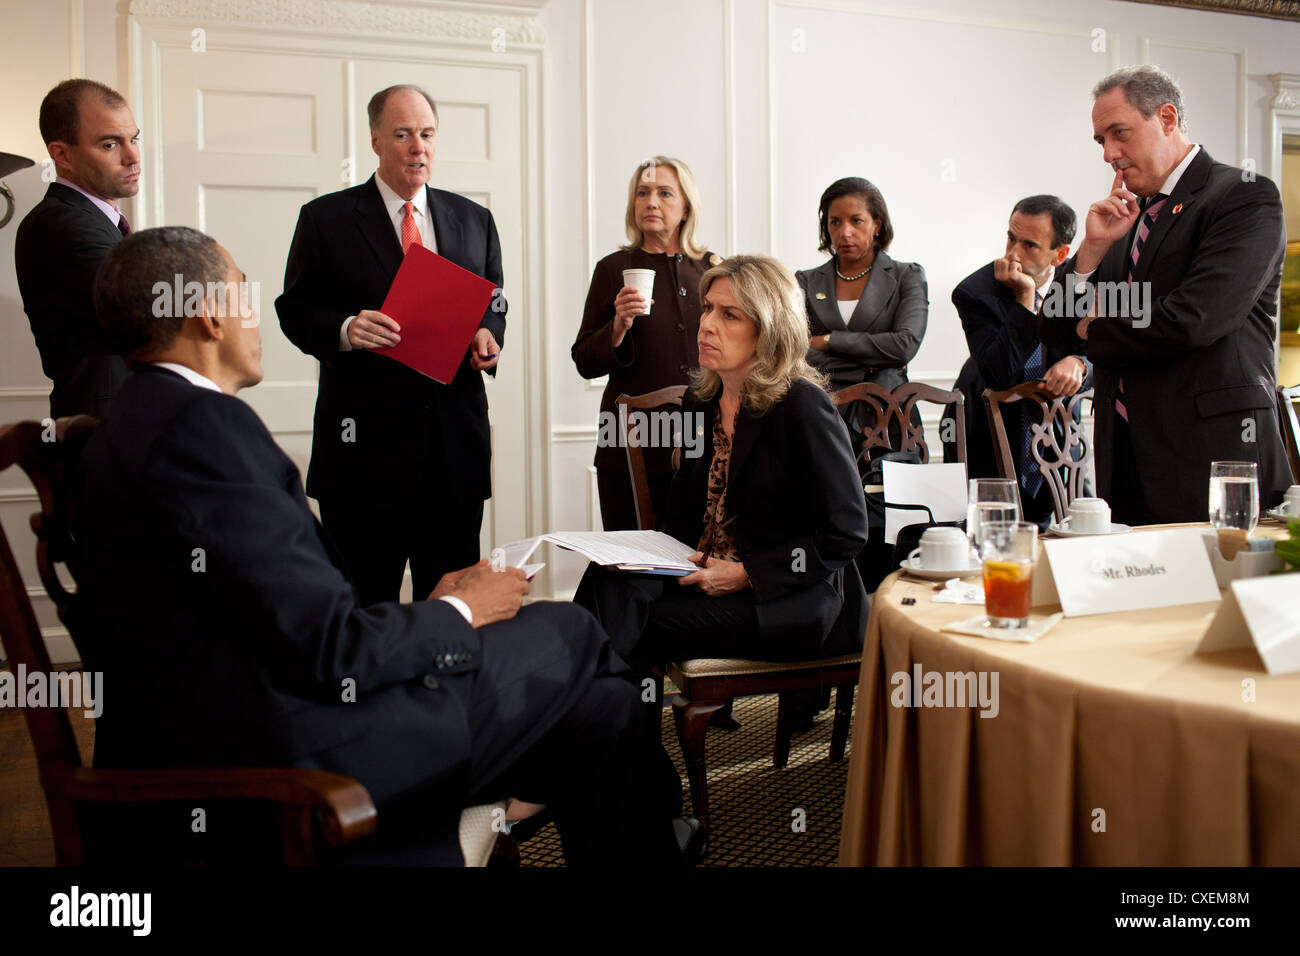 US President Barack Obama receives a briefing before a bilateral meeting with Prime Minister David Cameron of the - Stock Image